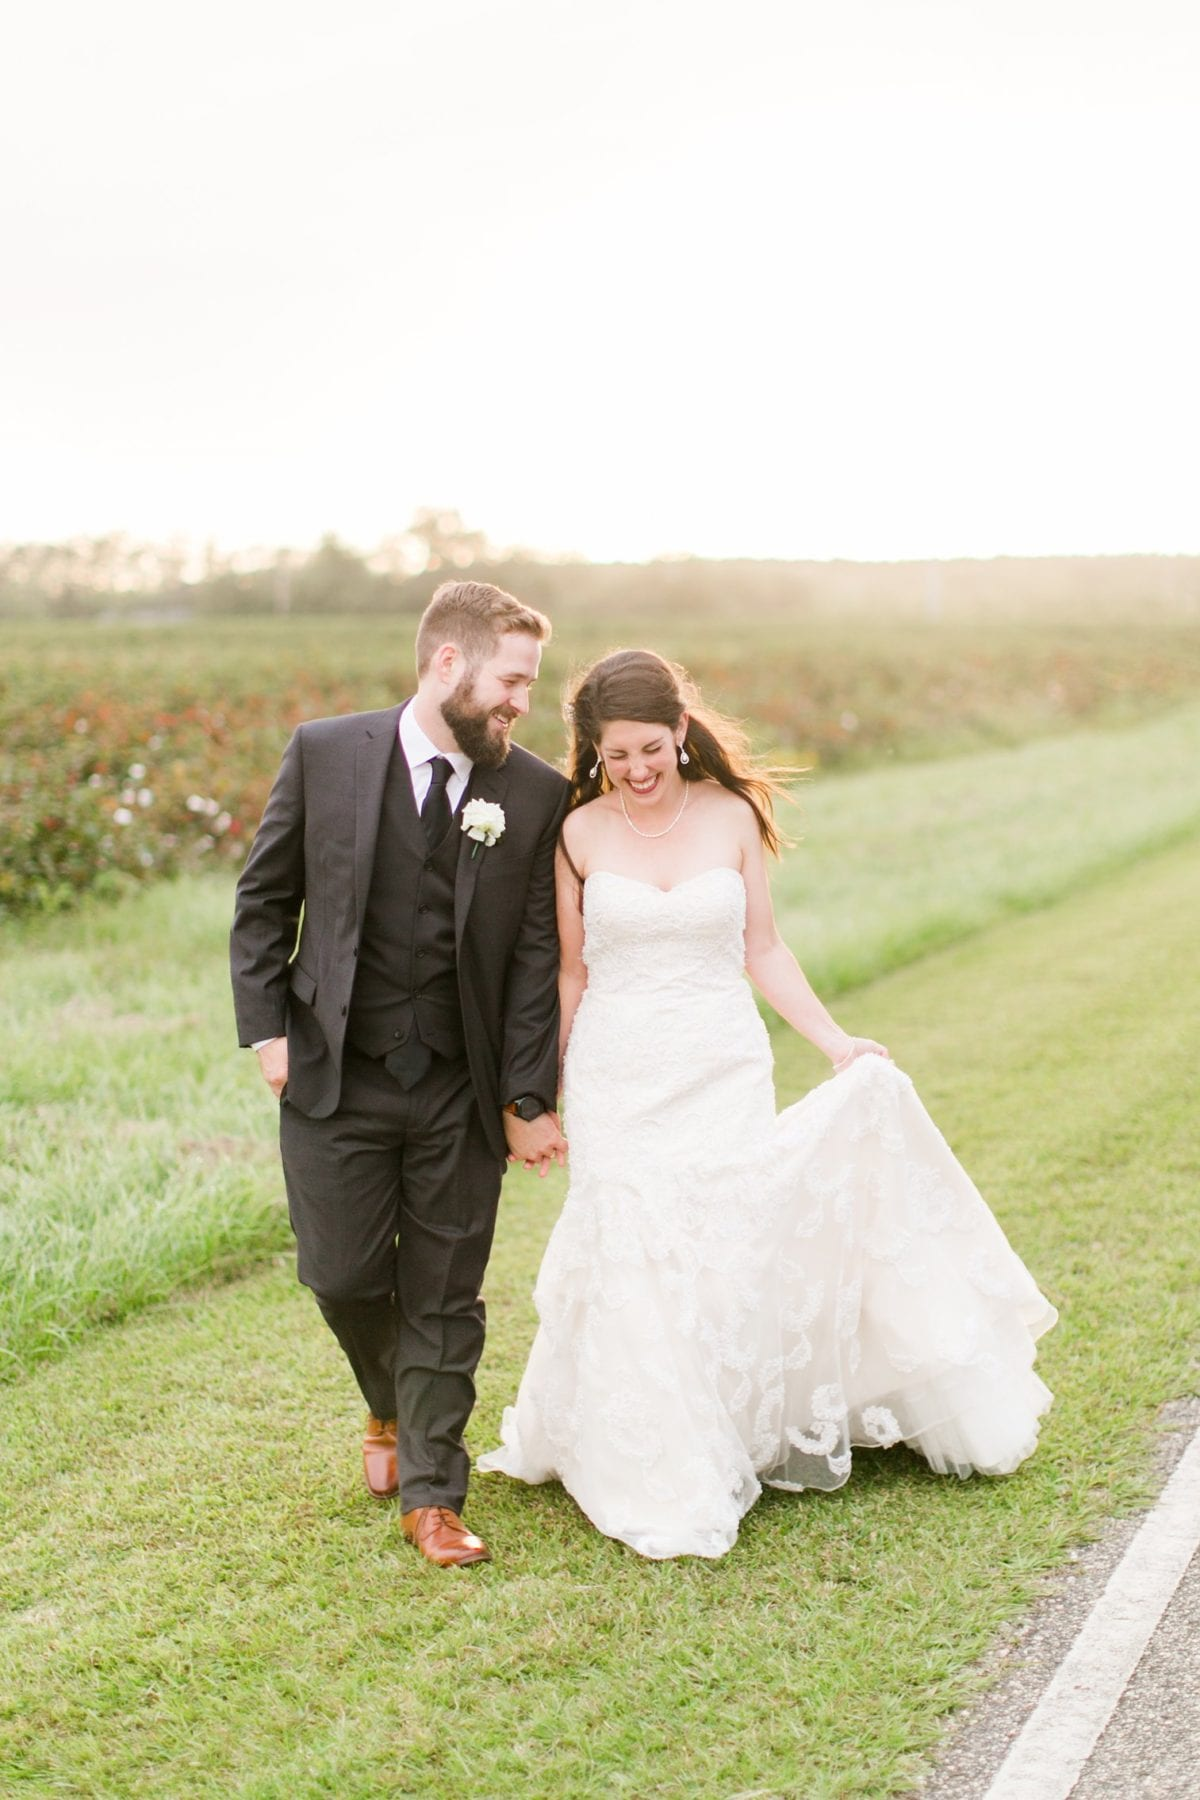 Bella Sera Gardens Wedding Alabama Wedding Photographer Megan Kelsey Photography-319.jpg